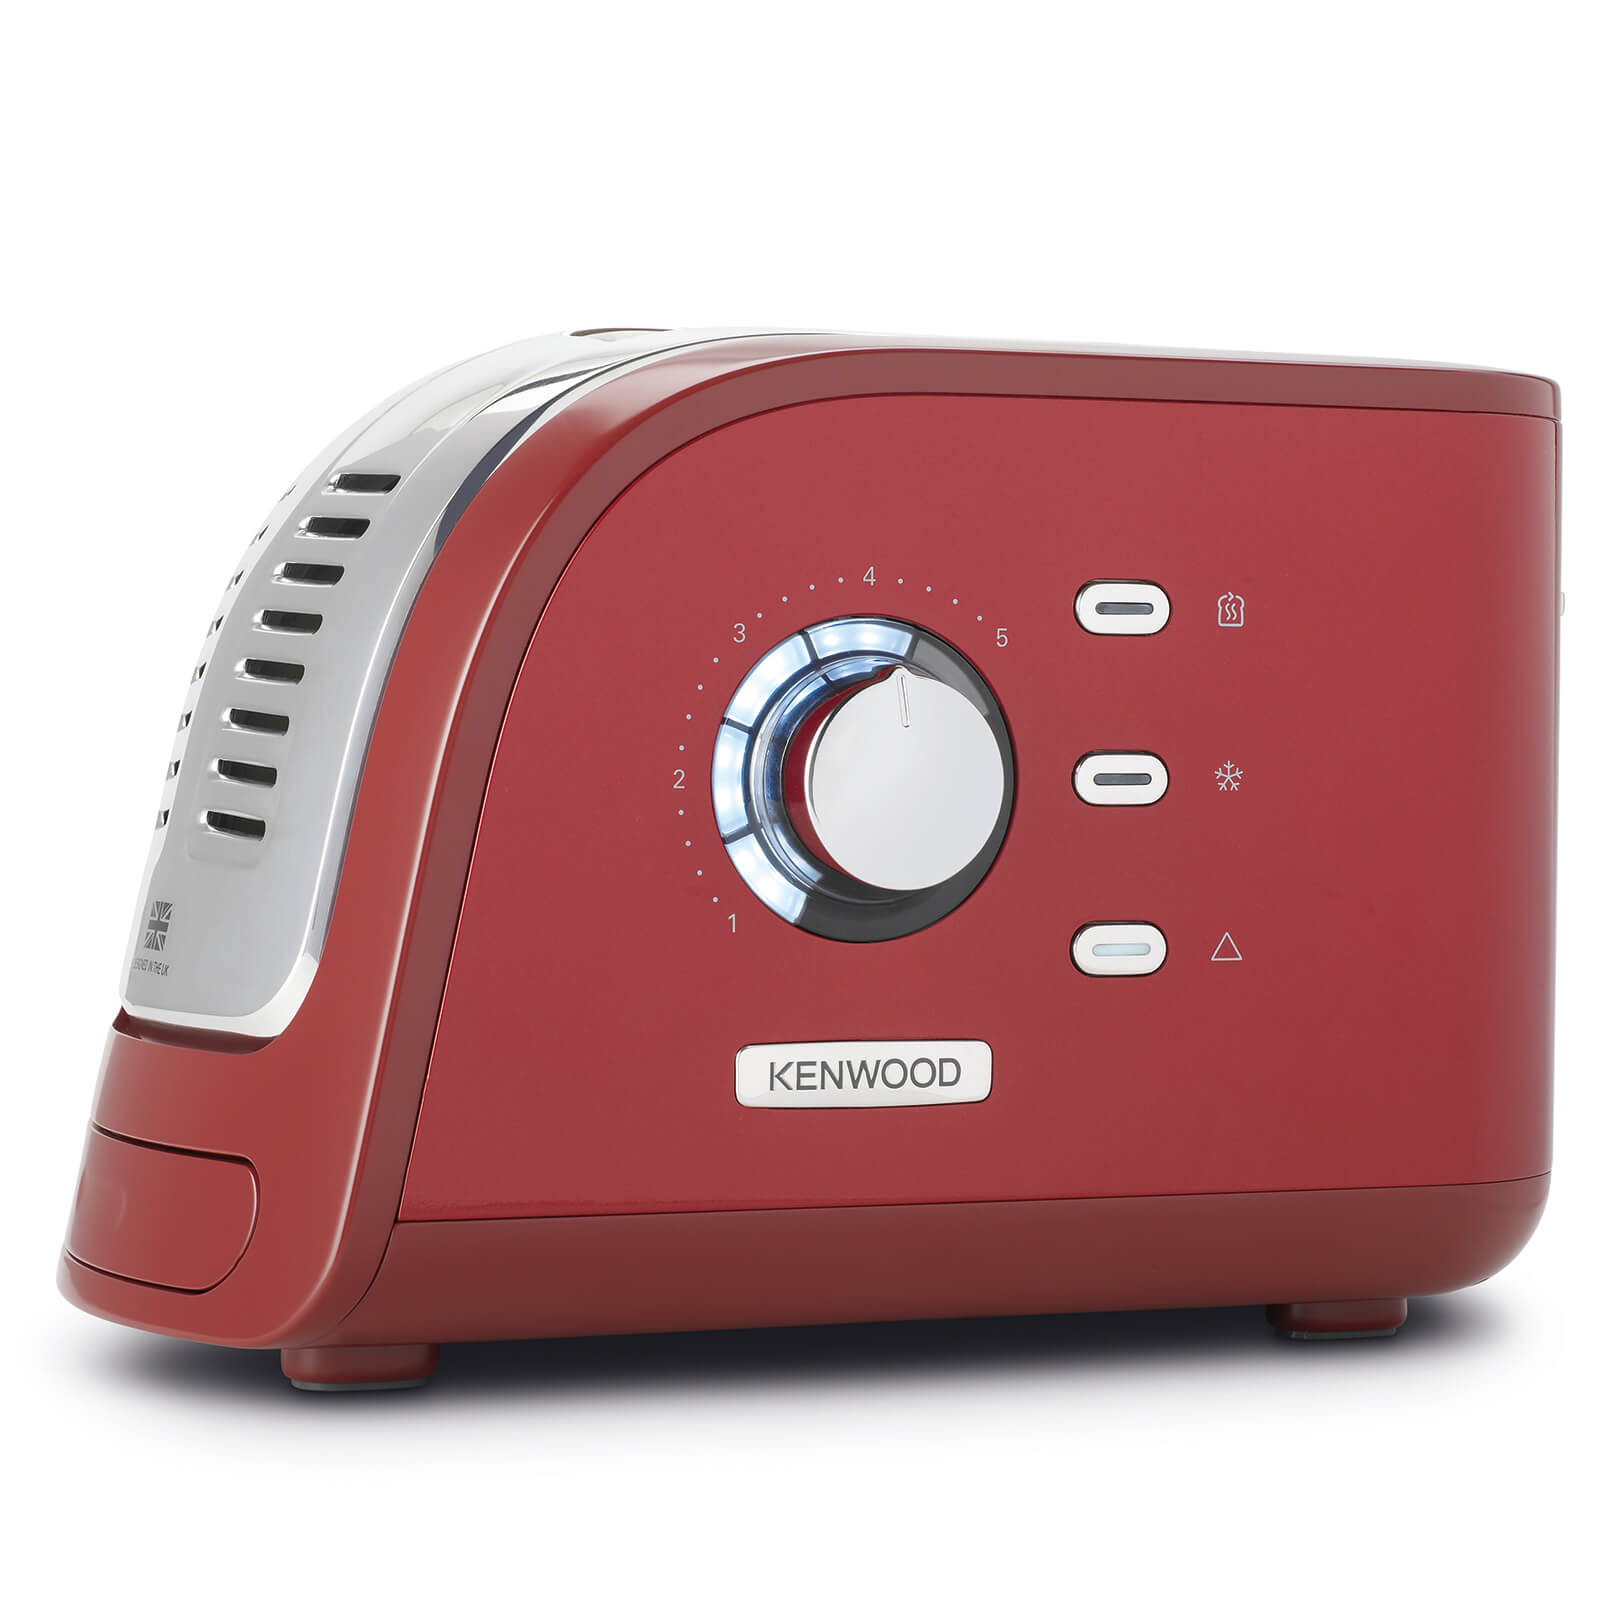 Kenwood TCM300RD Turbo 2 Slice Toaster - Red